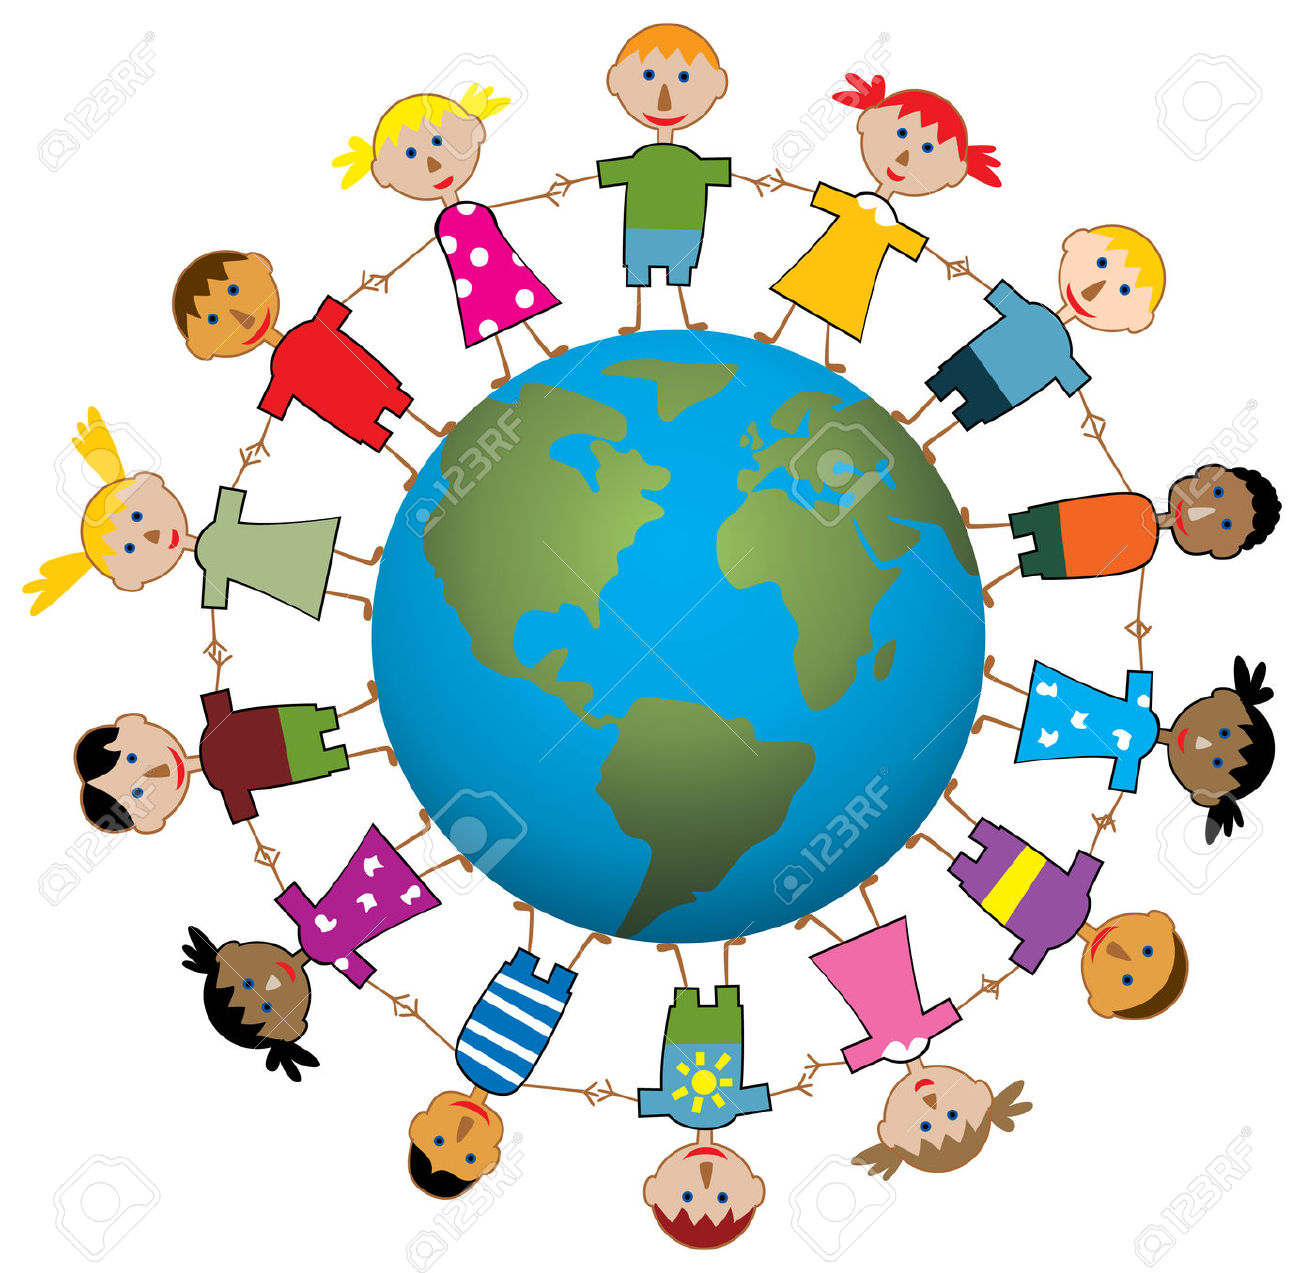 The world around us clipart png transparent The world around us clipart - ClipartFest png transparent